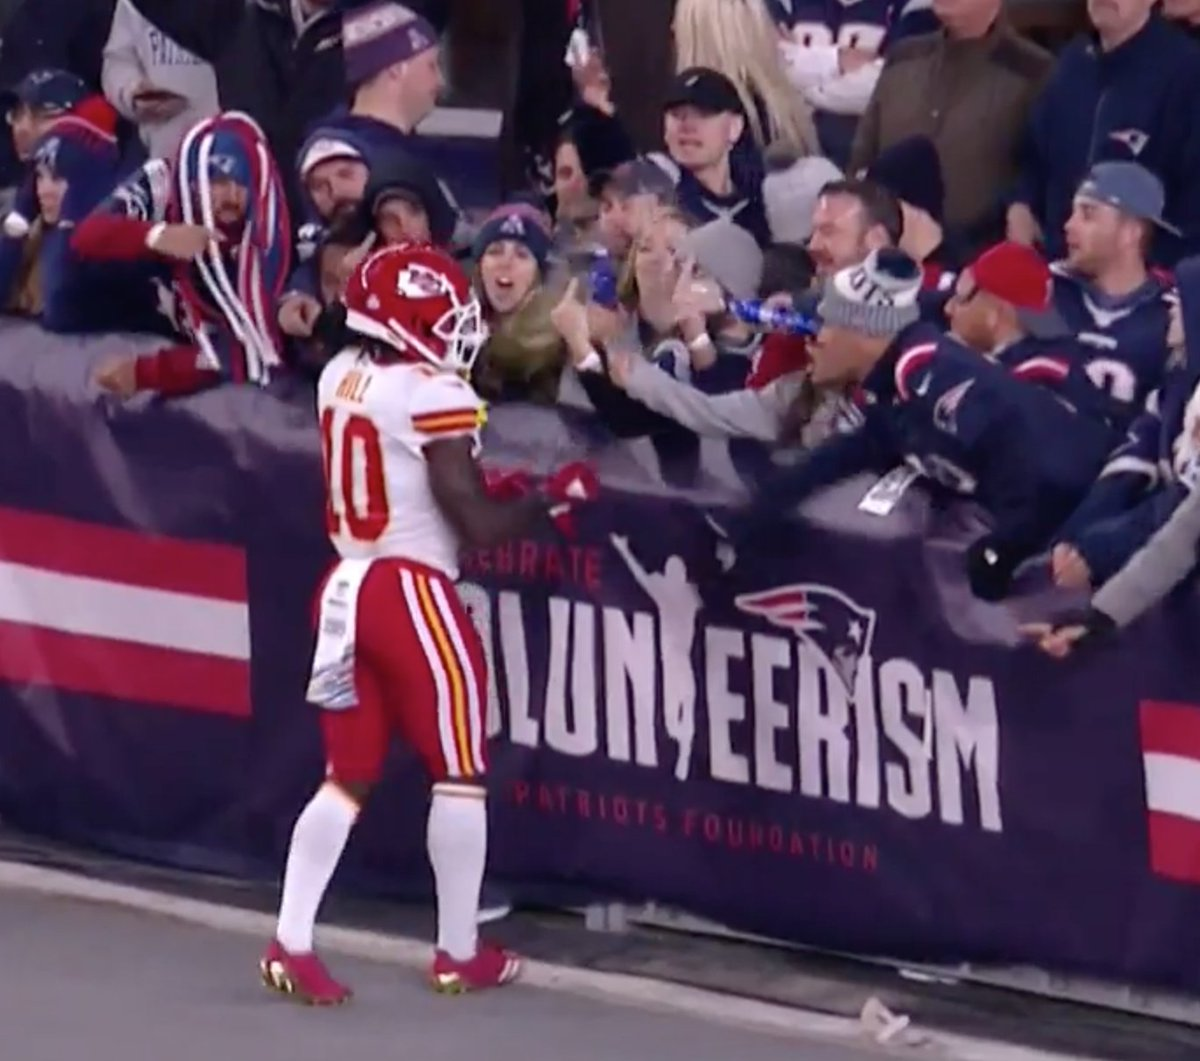 Patriots fans spray Tyreek Hill with beer in face after touchdown